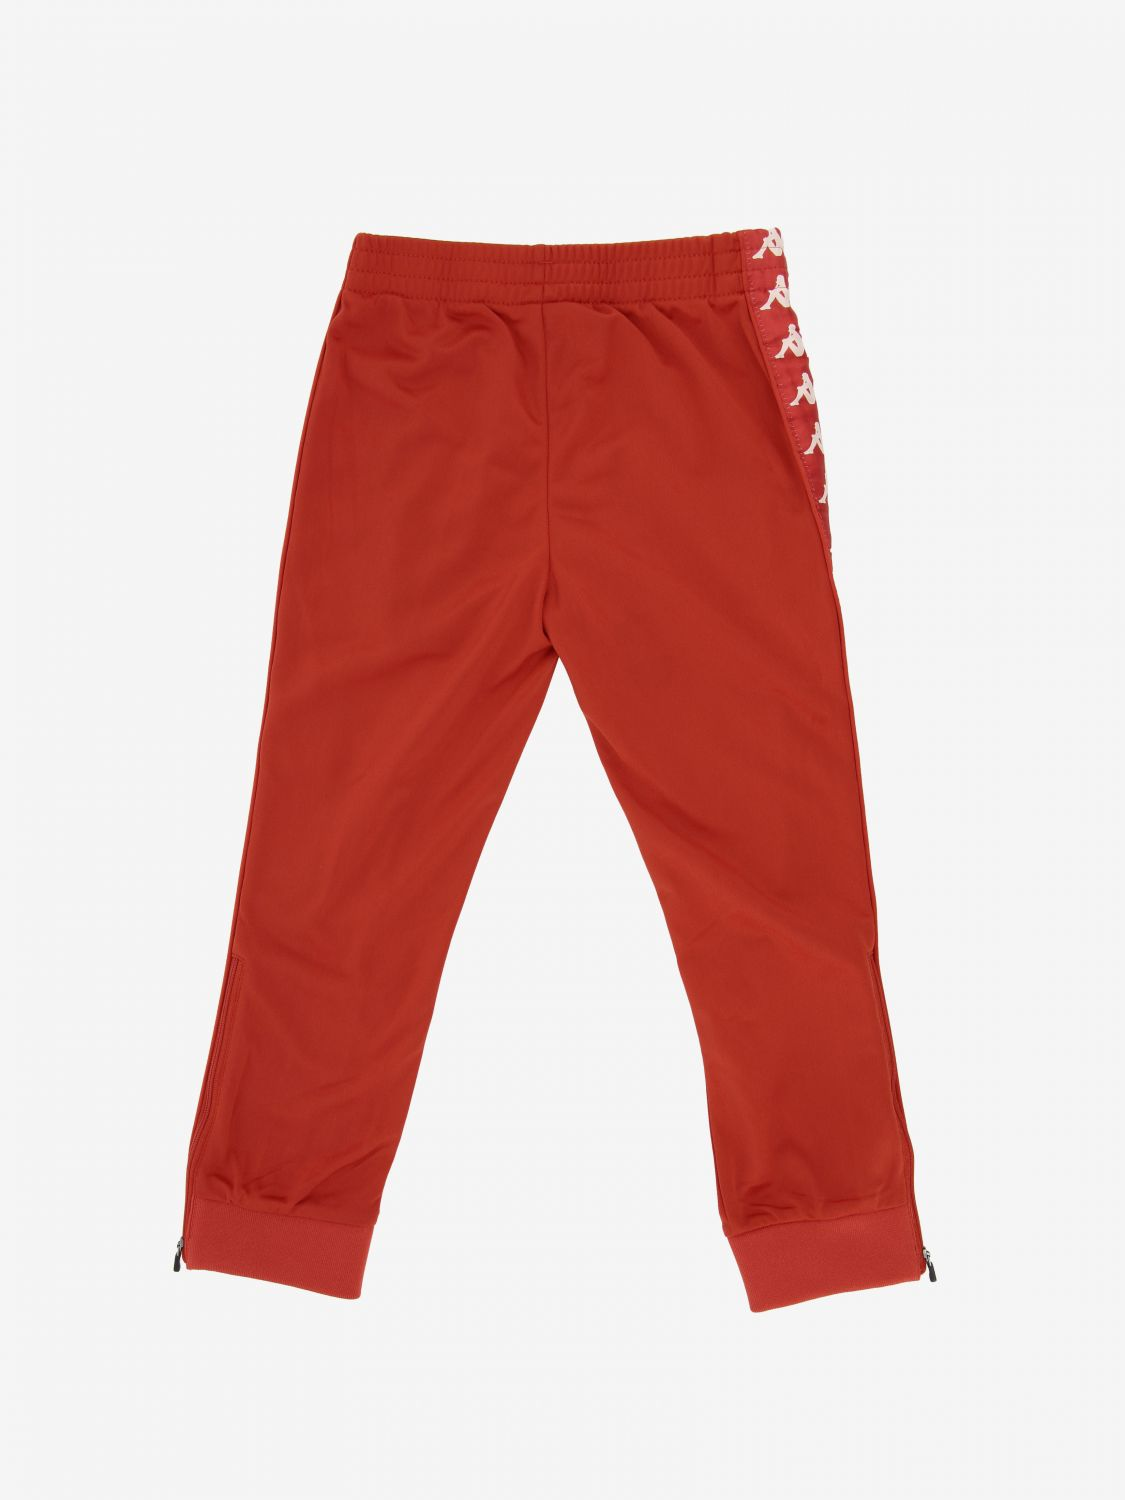 Kappa jogging trousers with logo red 2